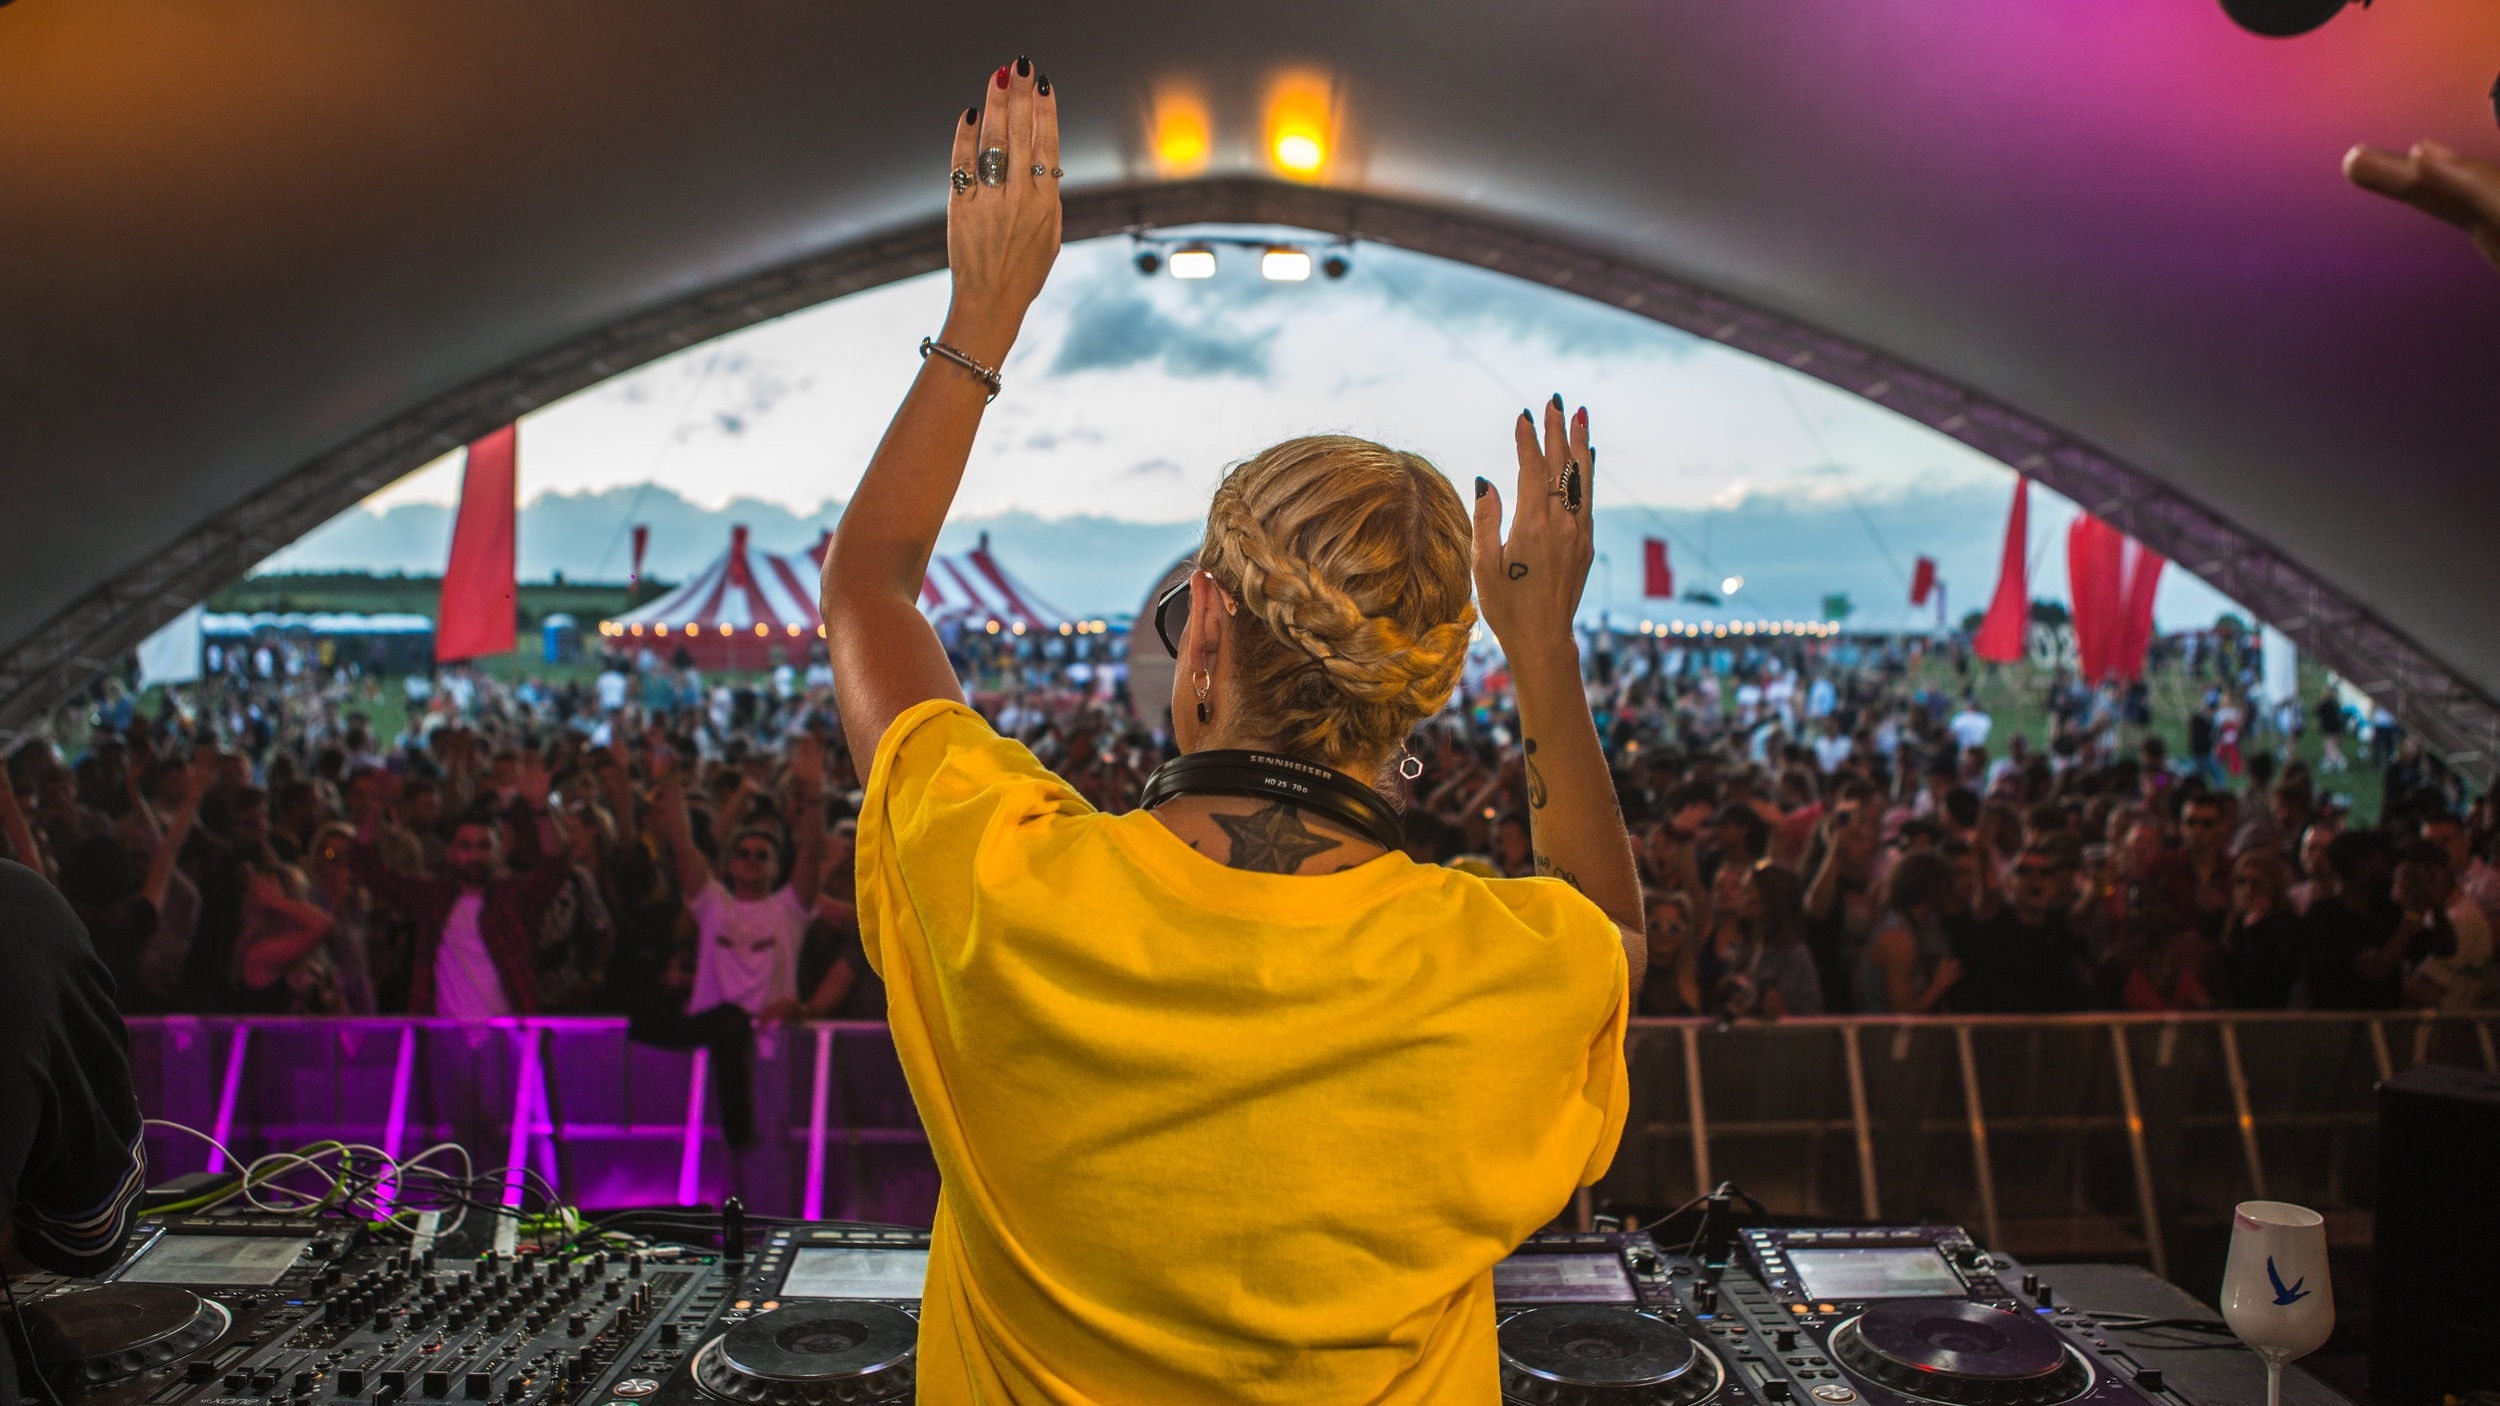 The amazing Heidi keeps the ravers on their toes at S&C 2018